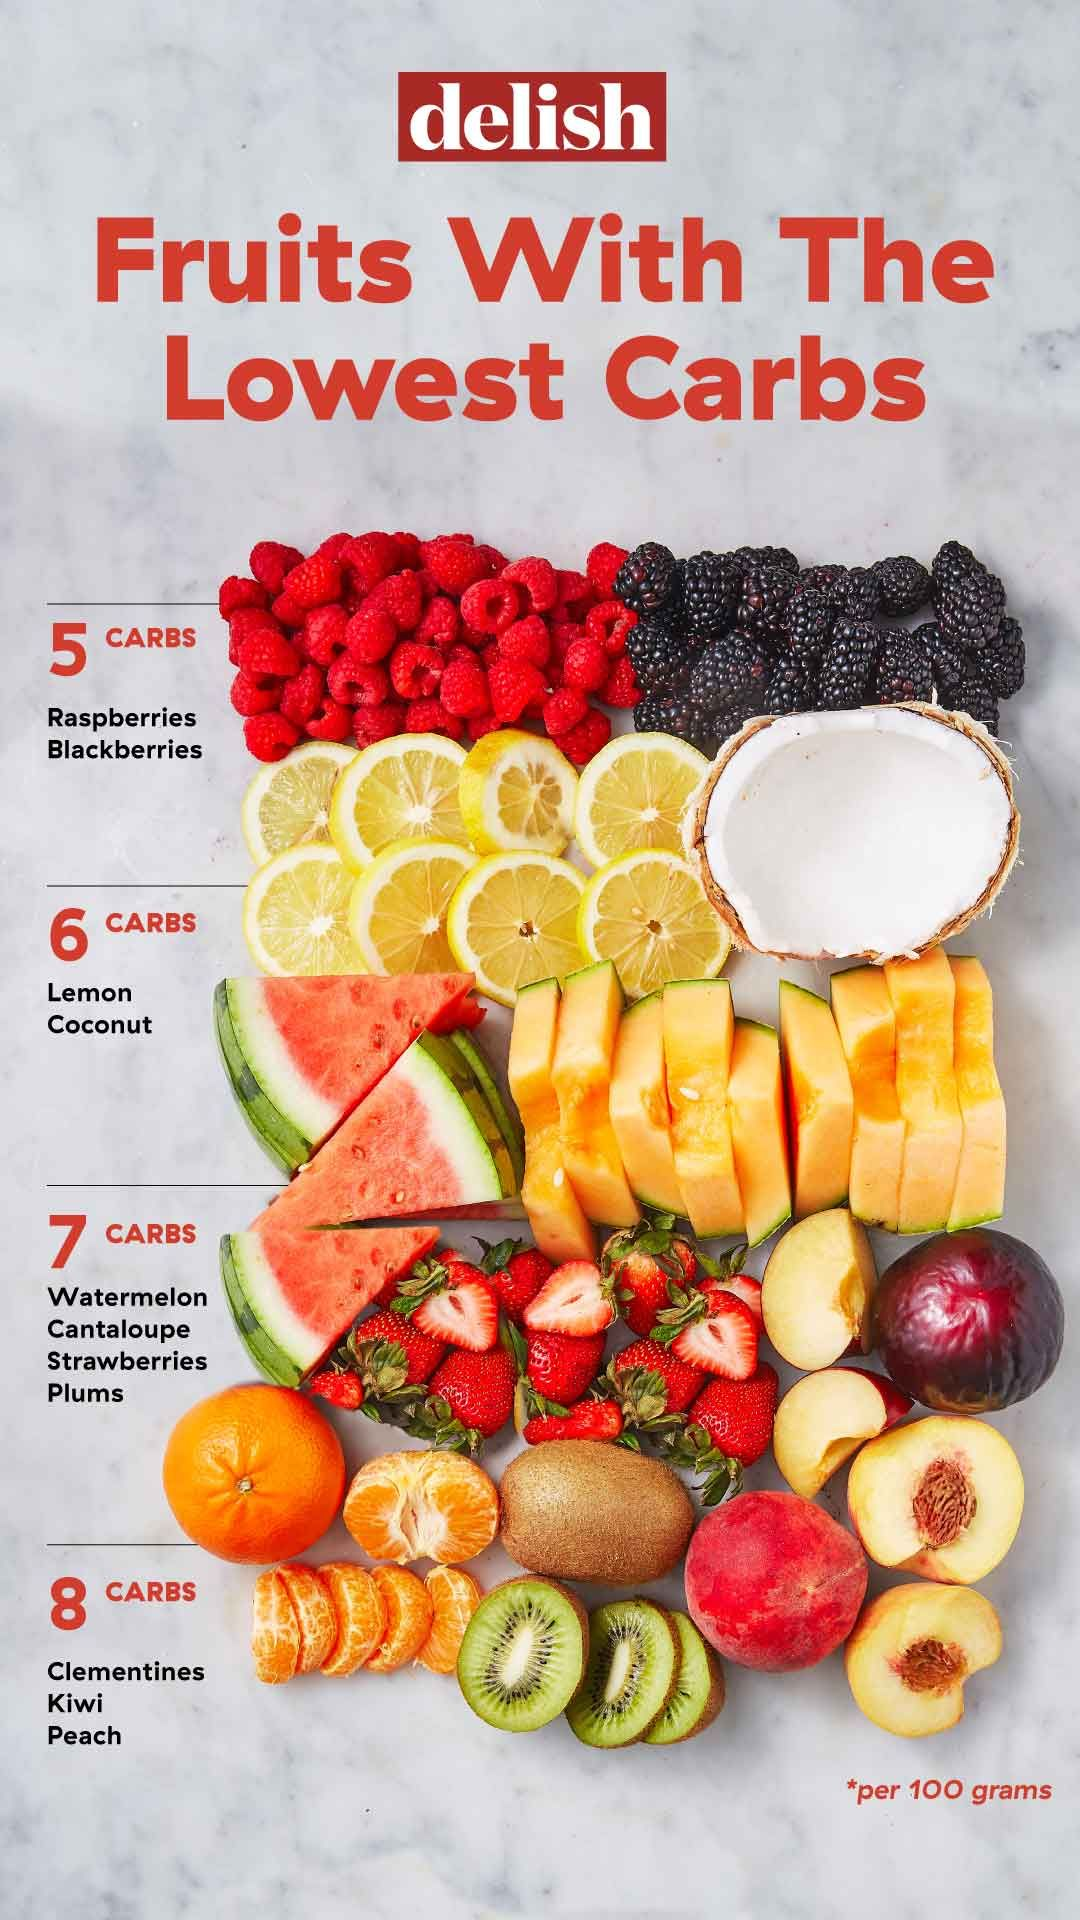 picture regarding Low Carb Fruits and Vegetables Printable List titled Small-Carb End result And Berries Specialist In direction of The Simplest Culmination For